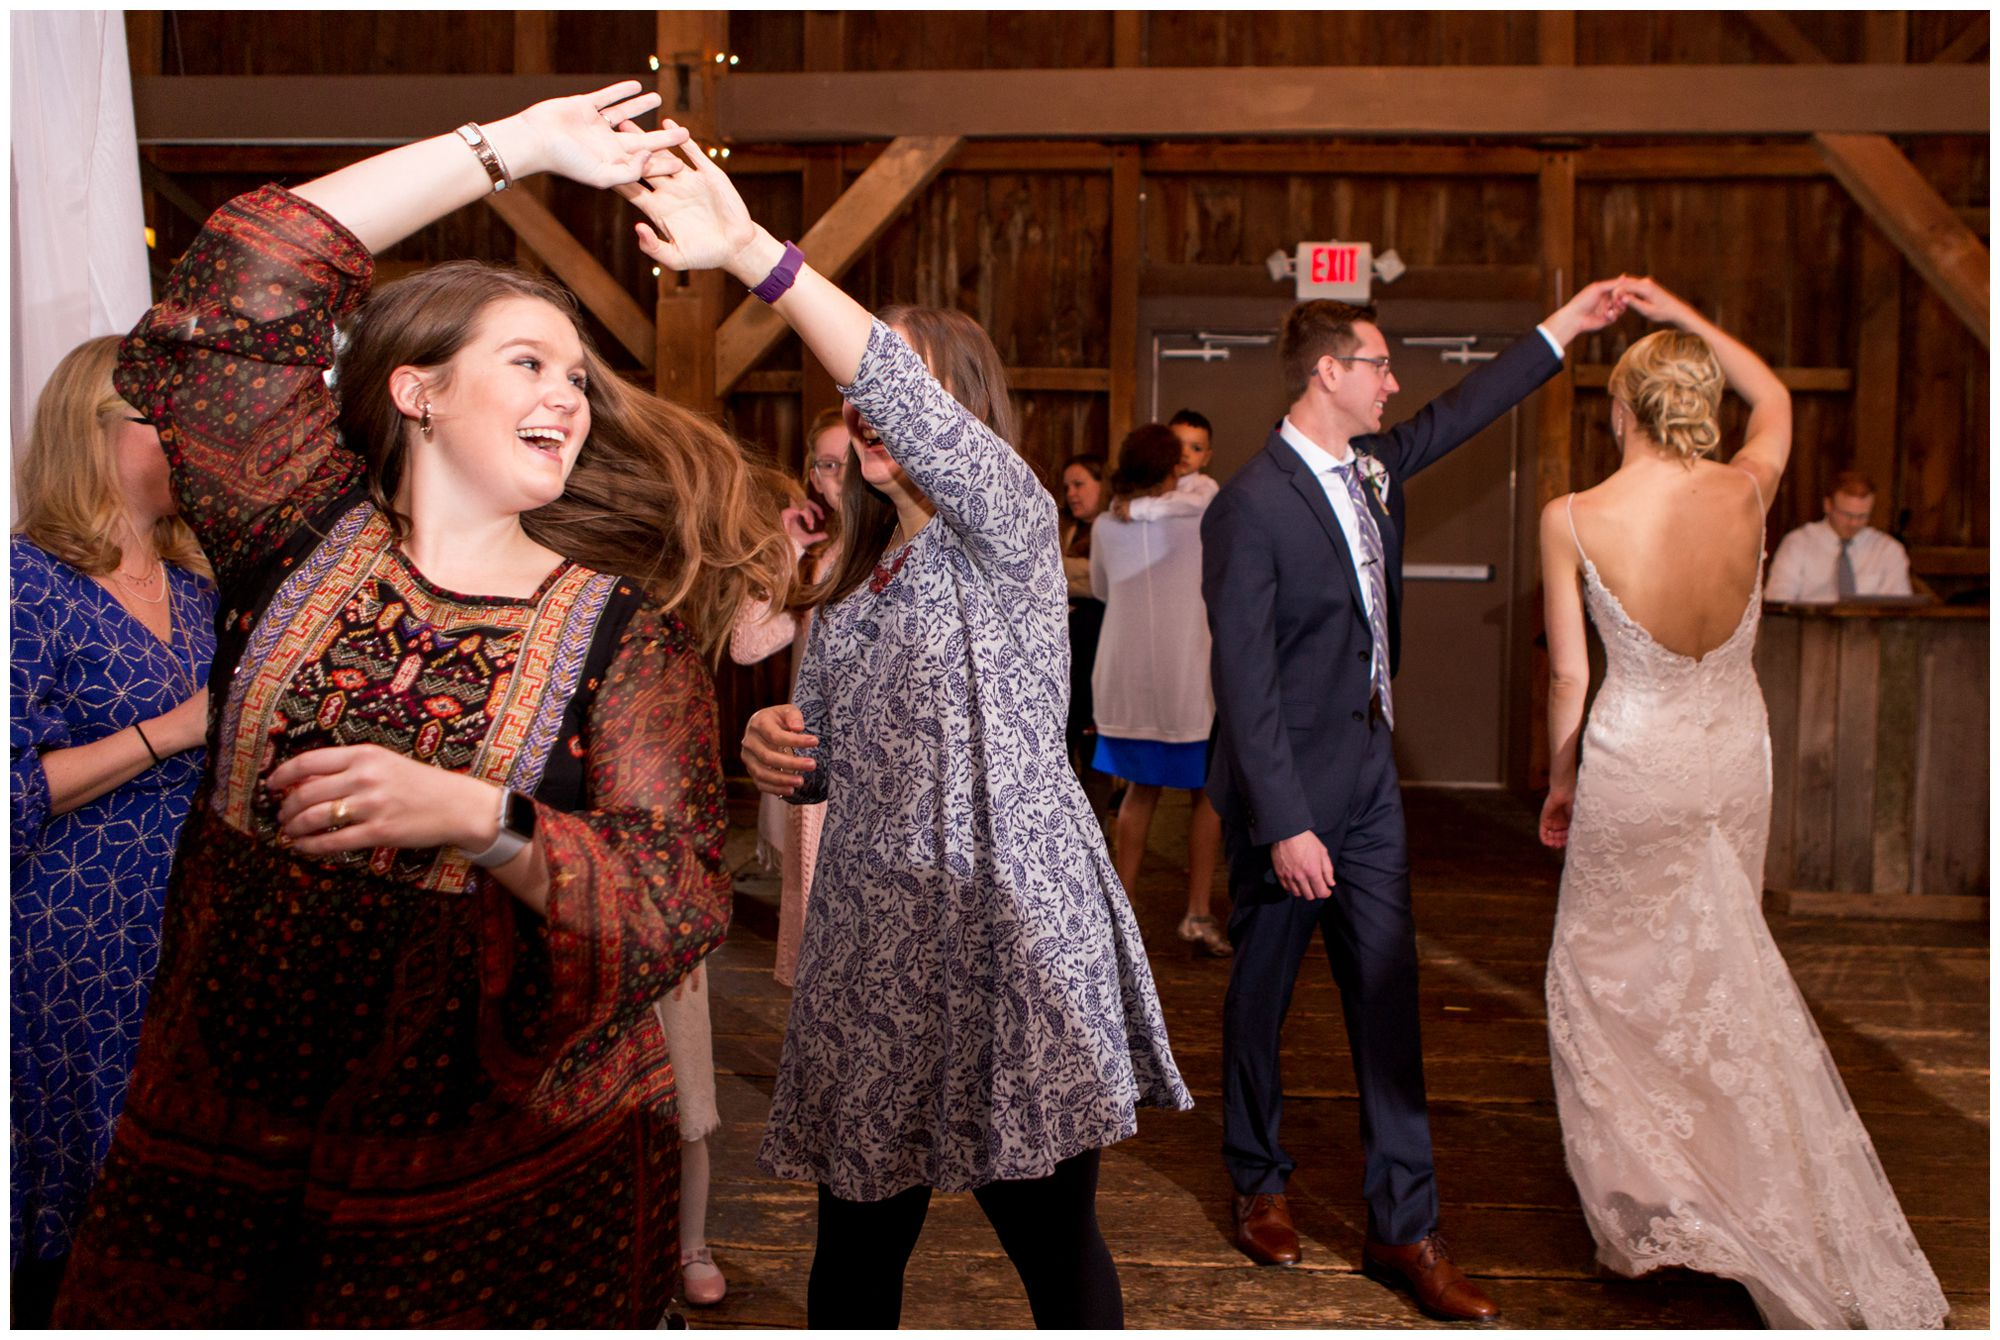 guests dance during wedding reception at Mustard Seed Gardens in Noblesville Indiana